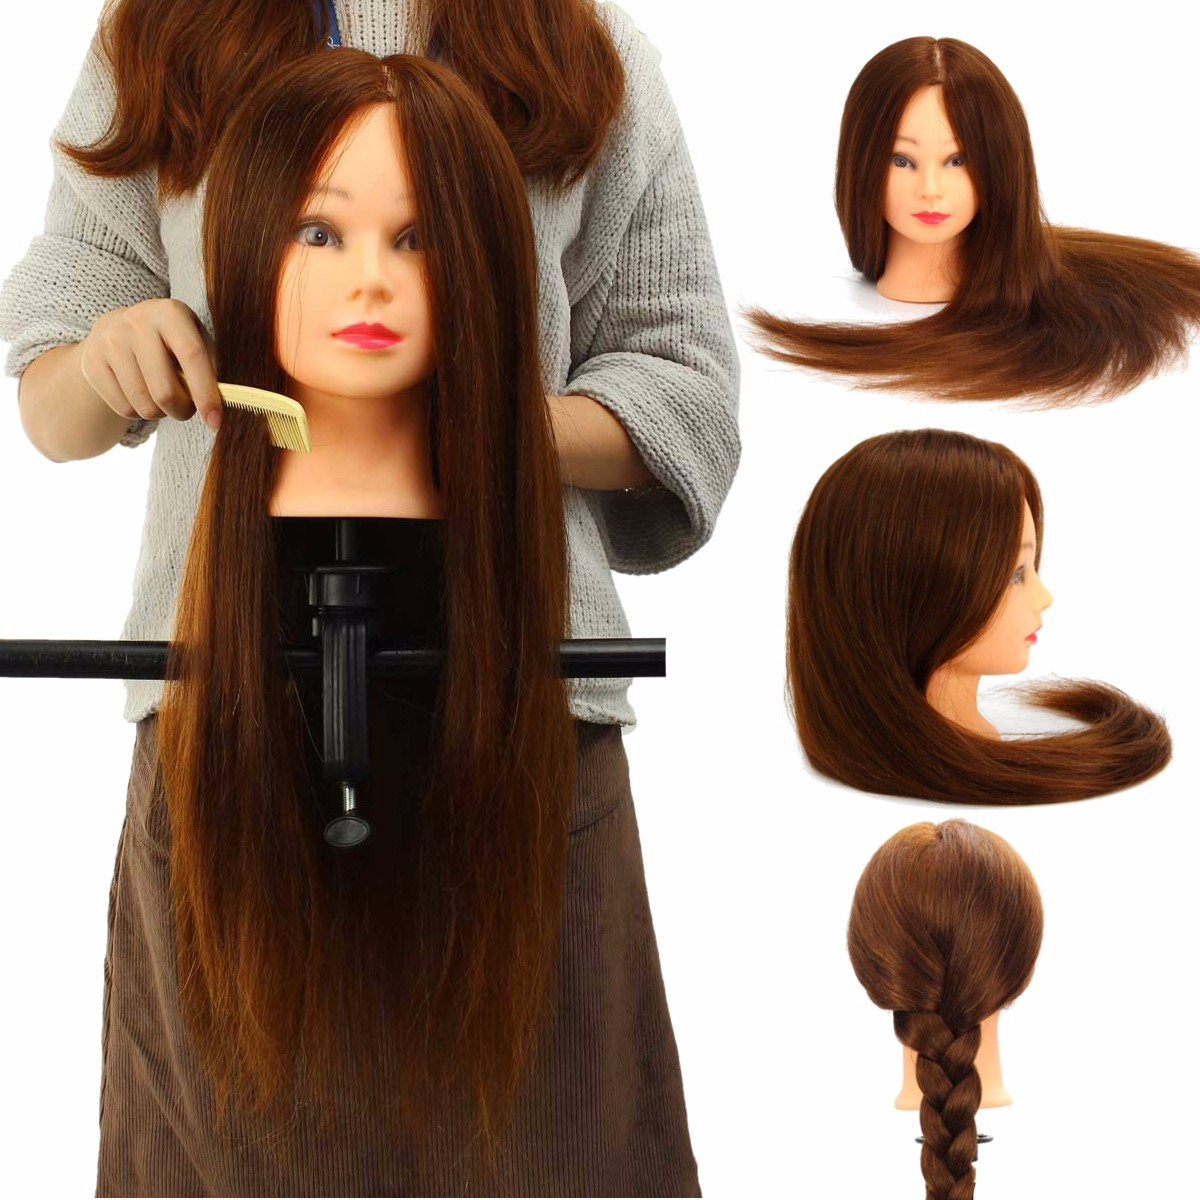 100% Real Human Hair Mannequin Head Salon Hairdressing Training Model Clamp Holder цена 2017